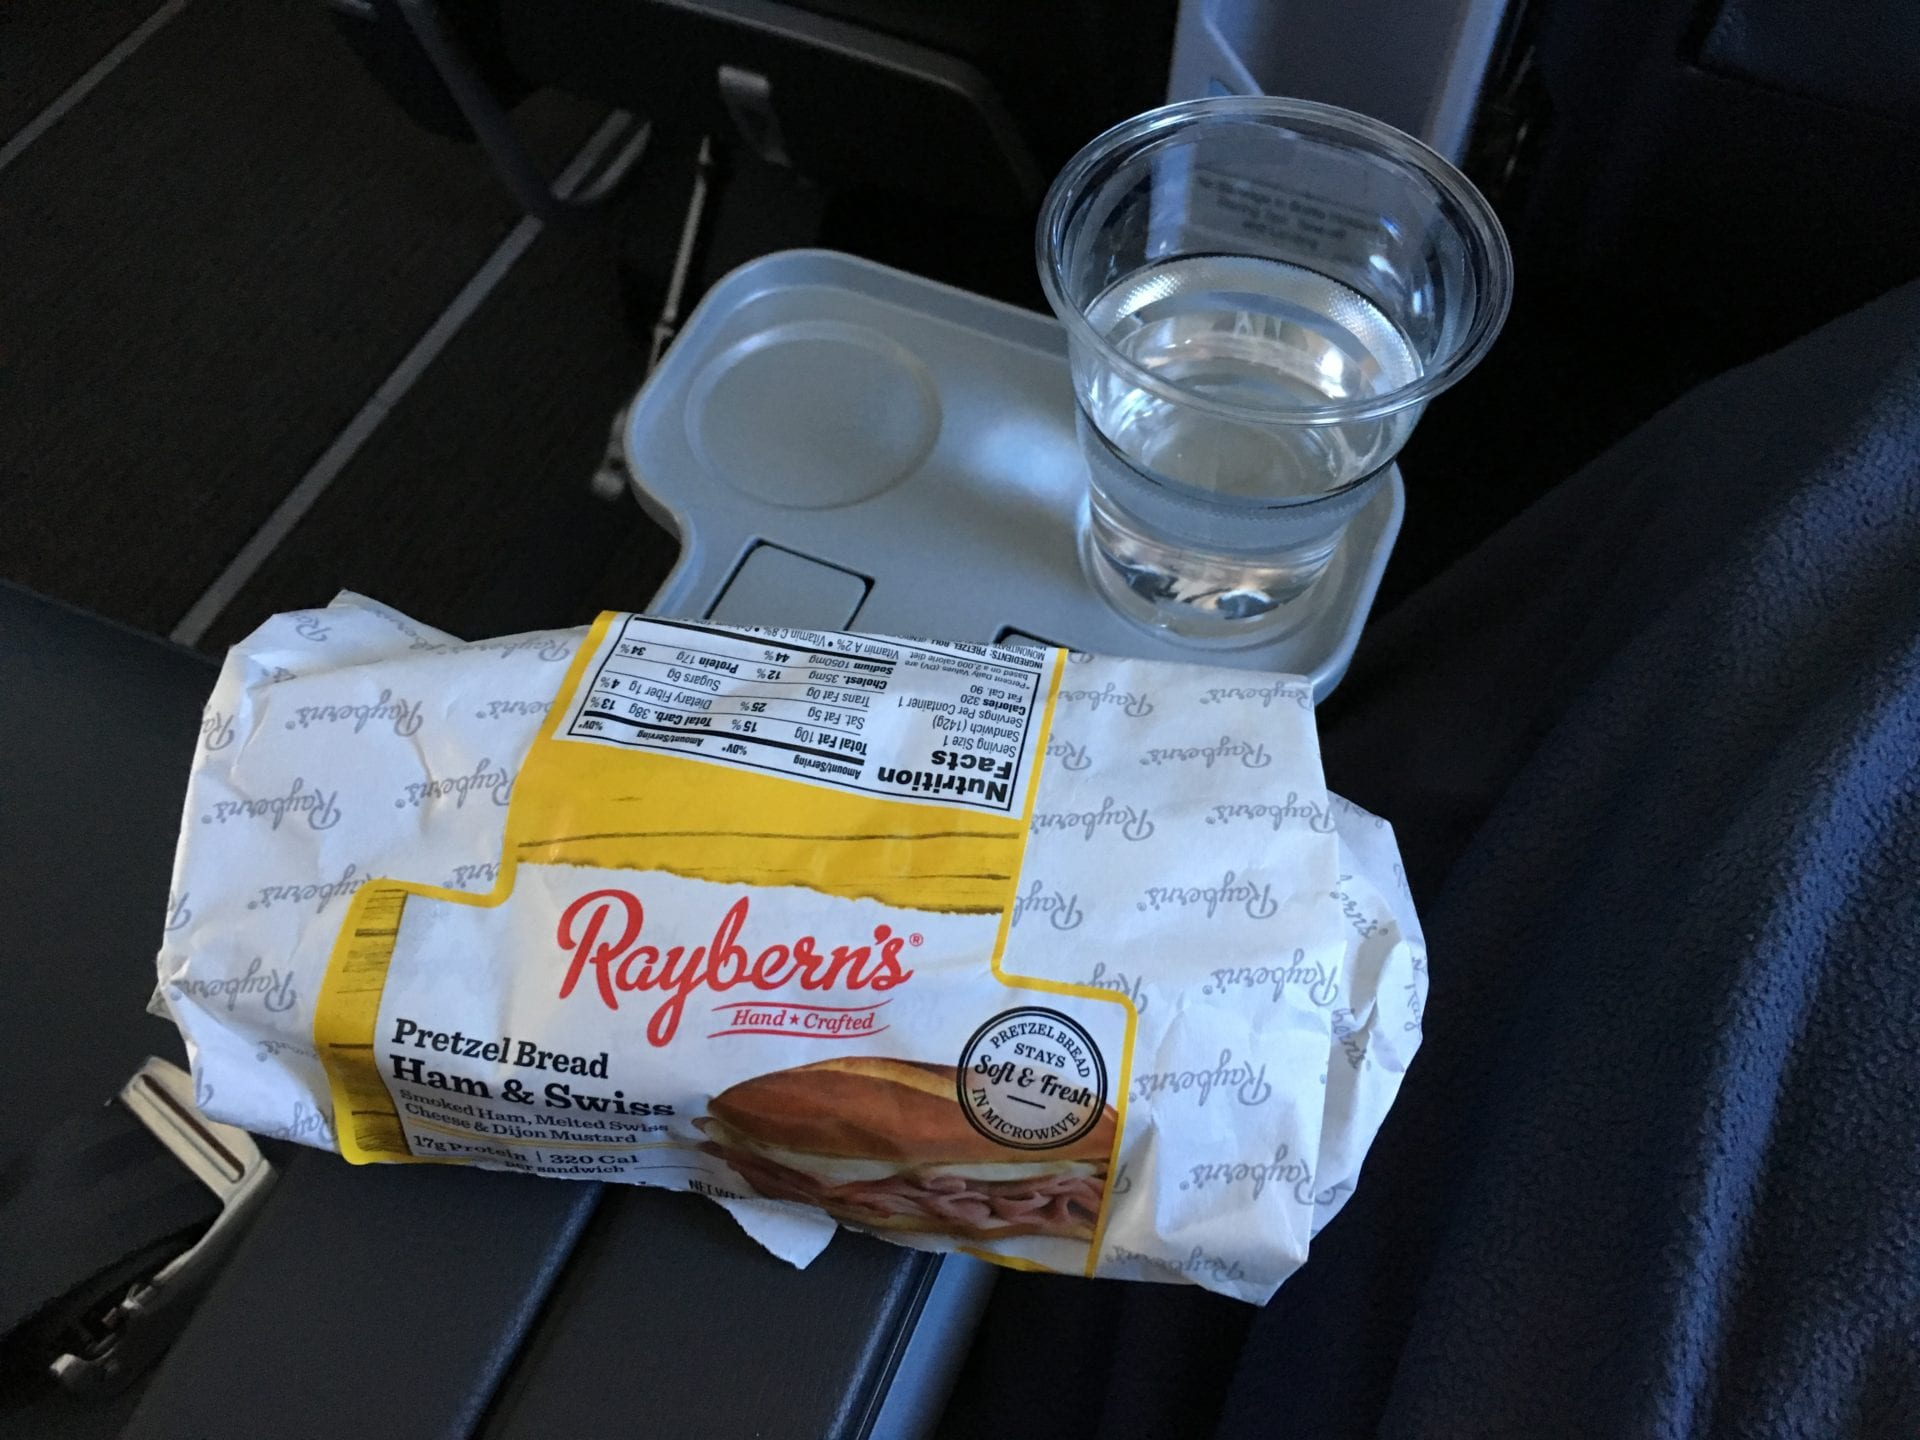 Singapore Airlines Premium Economy Class Ultralangstrecke Snack